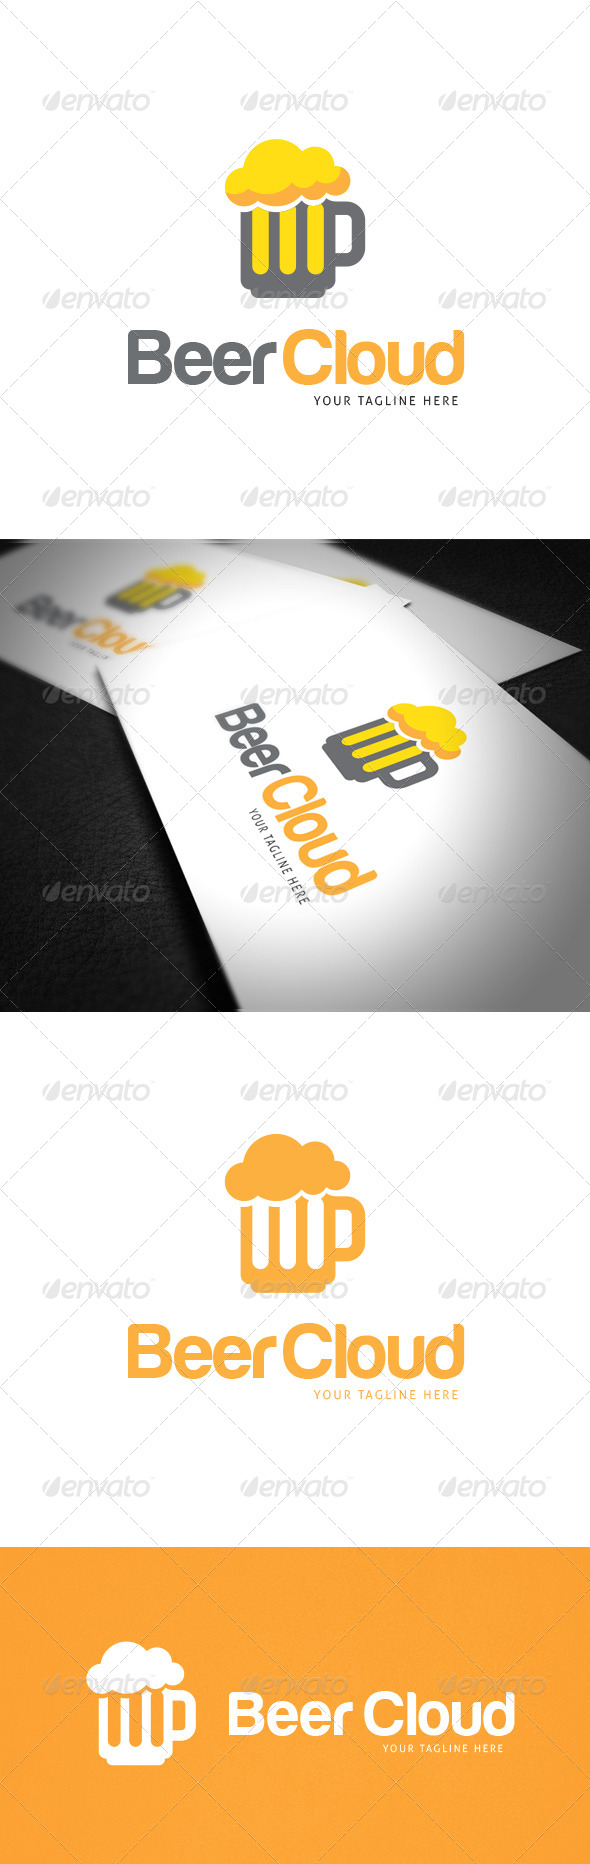 Beer Cloud Logo Template